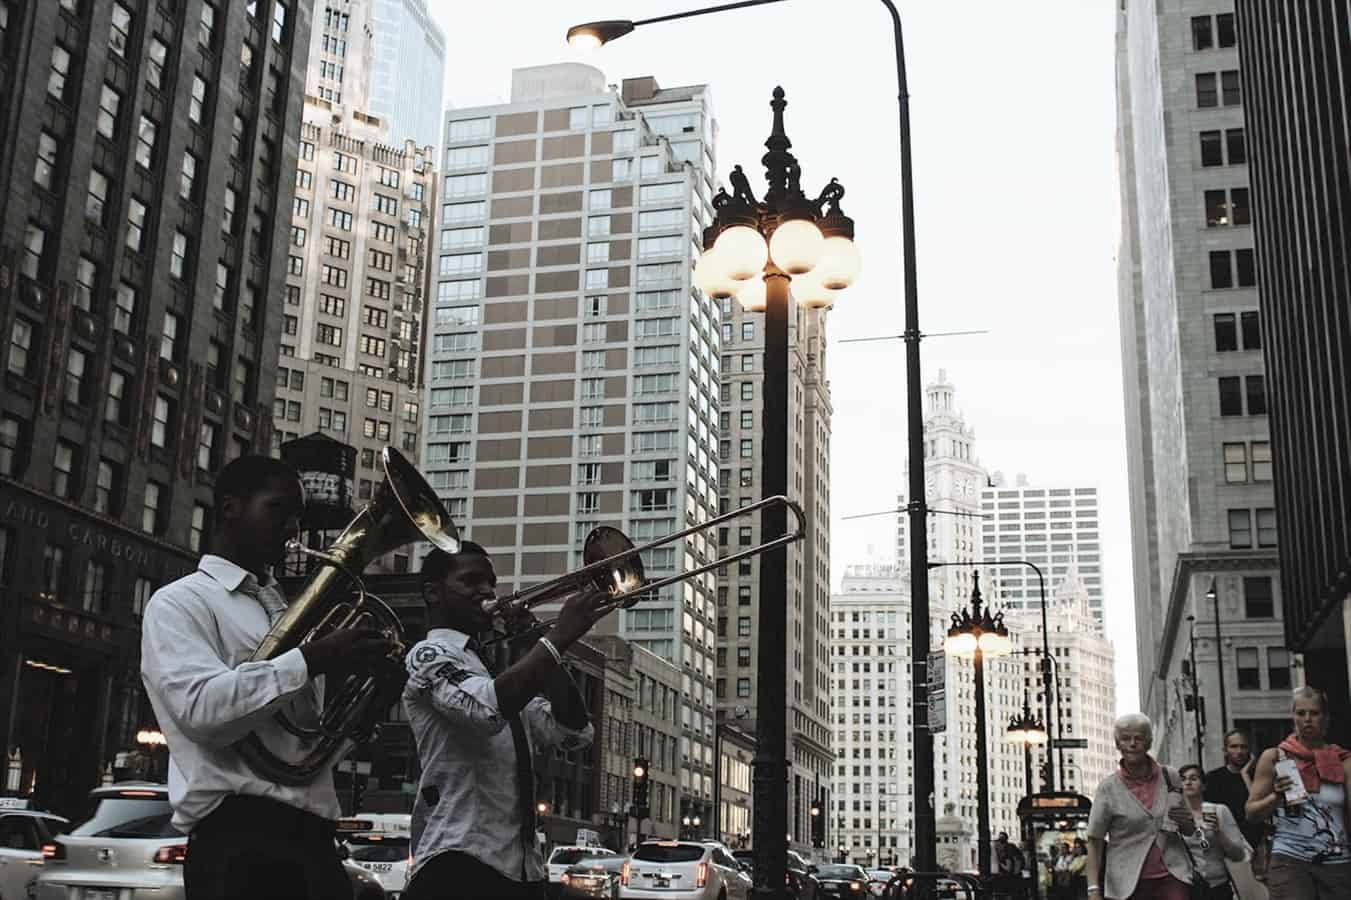 2 men playing trombone in the city